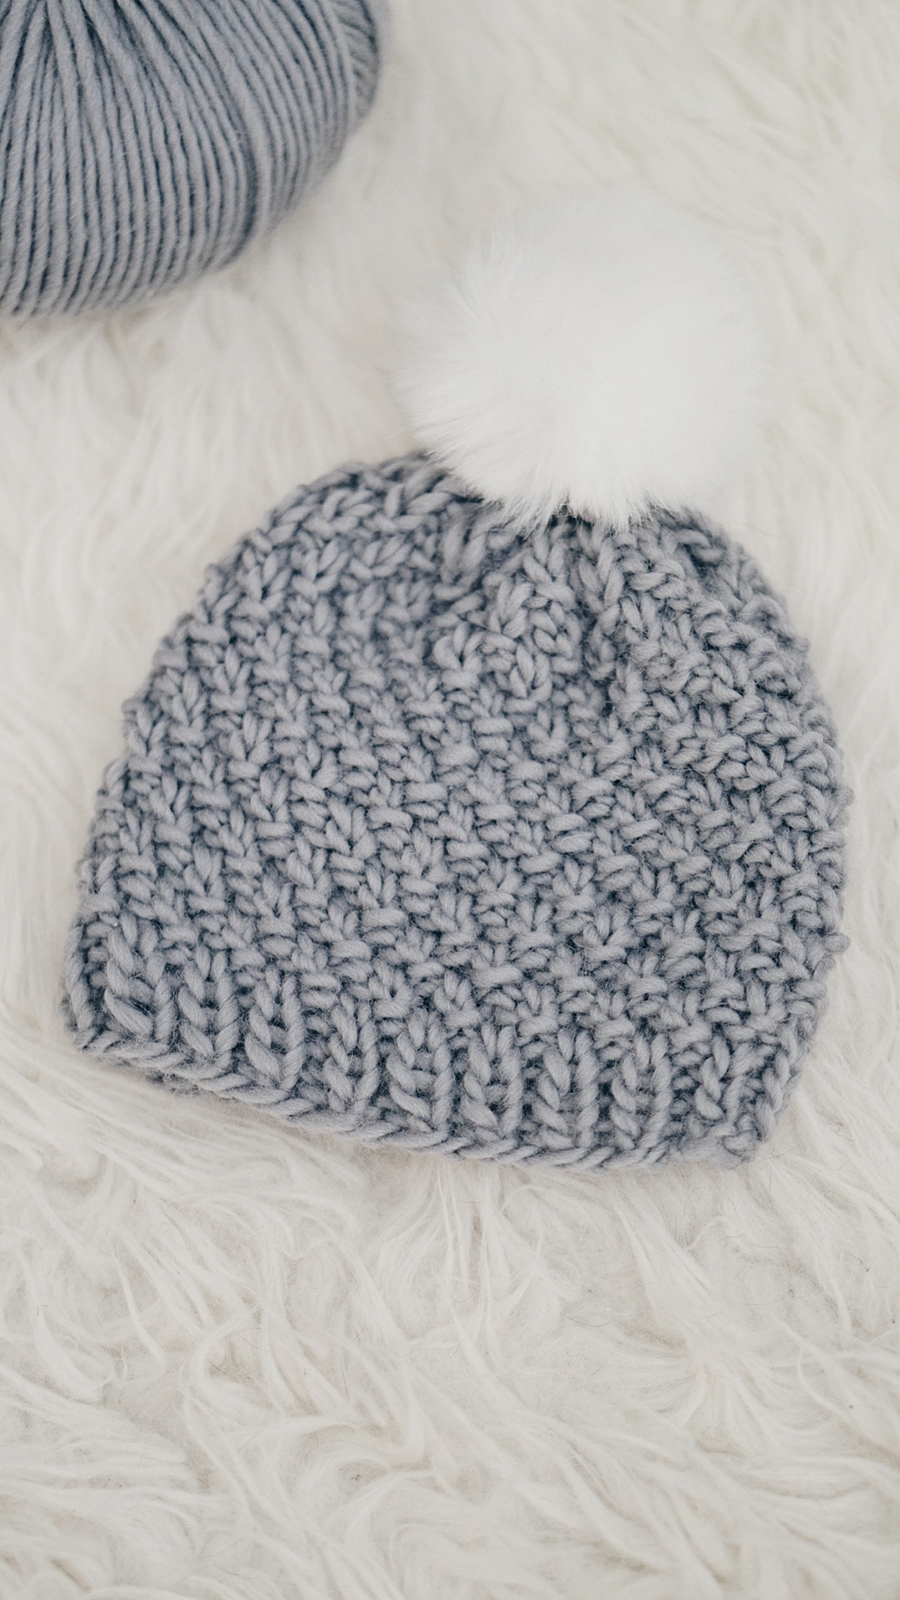 f7056c135e4 ... inexpensive the hat is really easy to make if you want to make your own  and